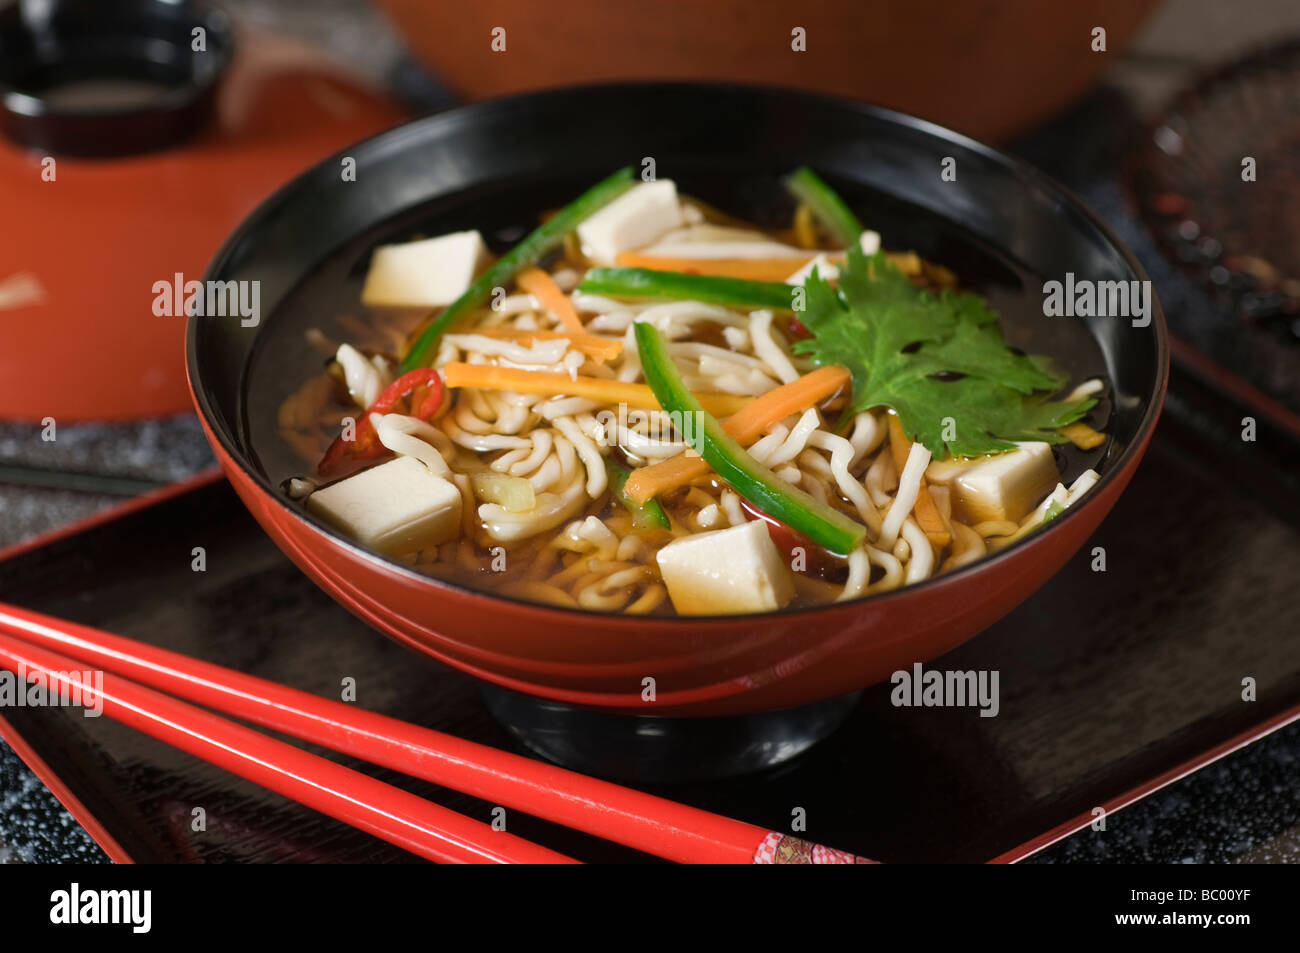 Miso soup and noodles Japan Food Stock Photo